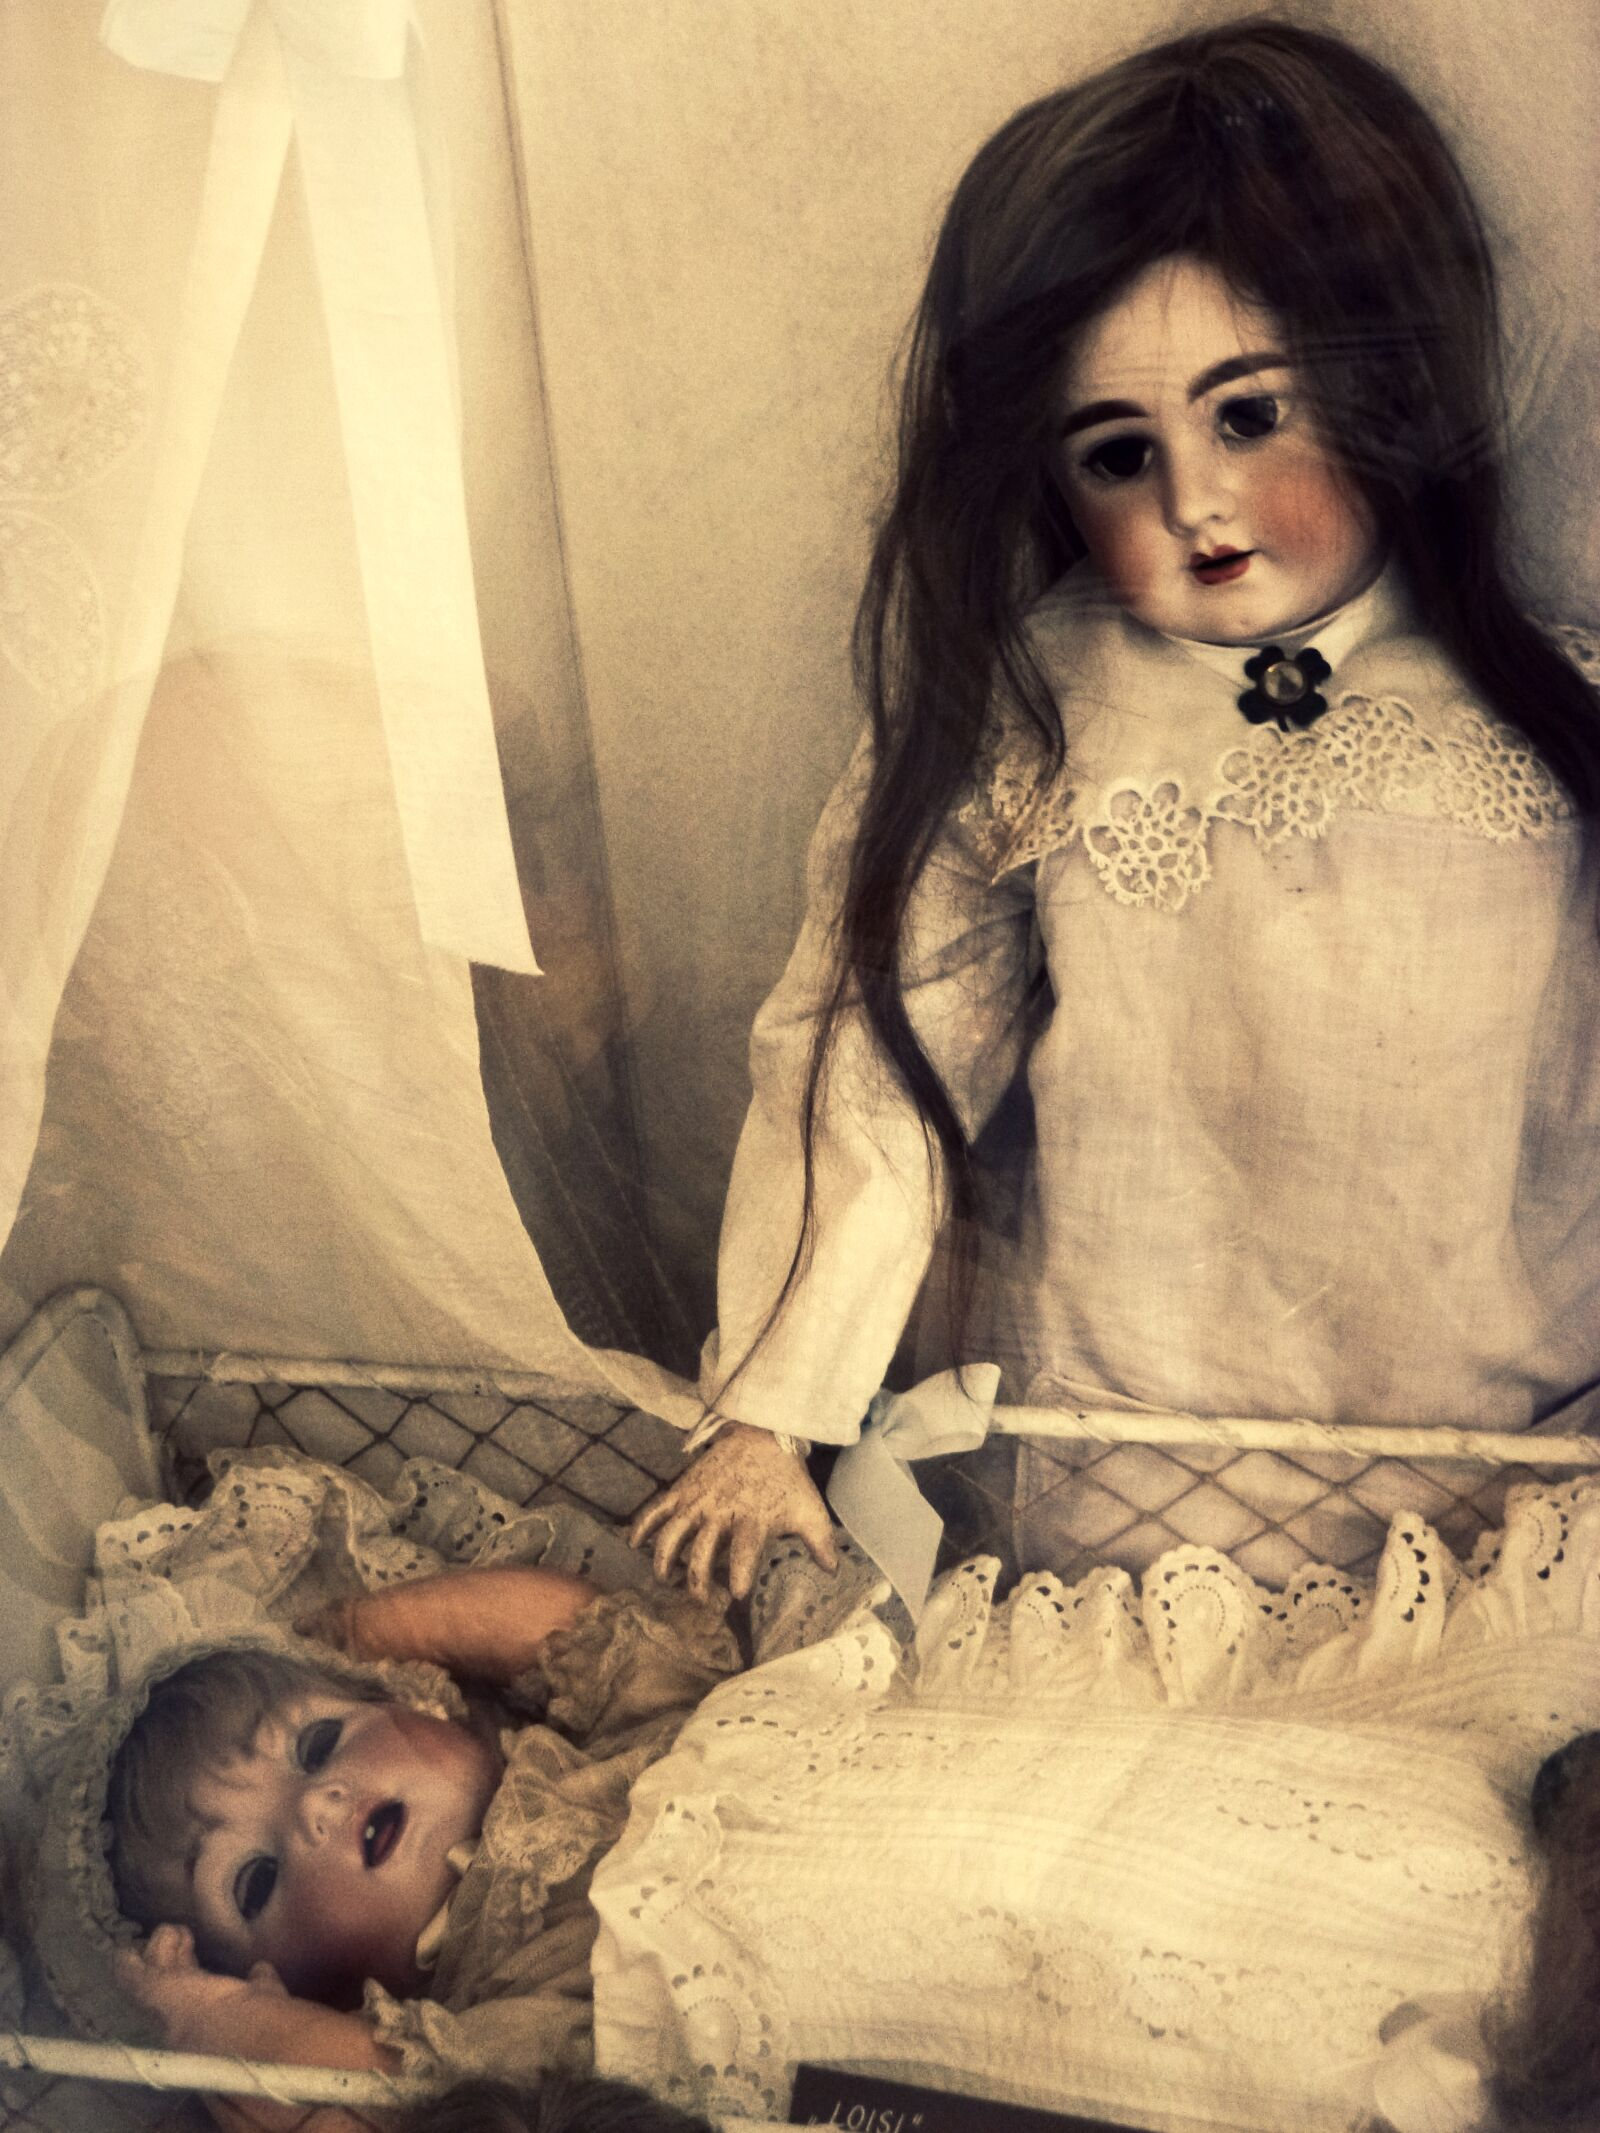 doll, scary, creepy